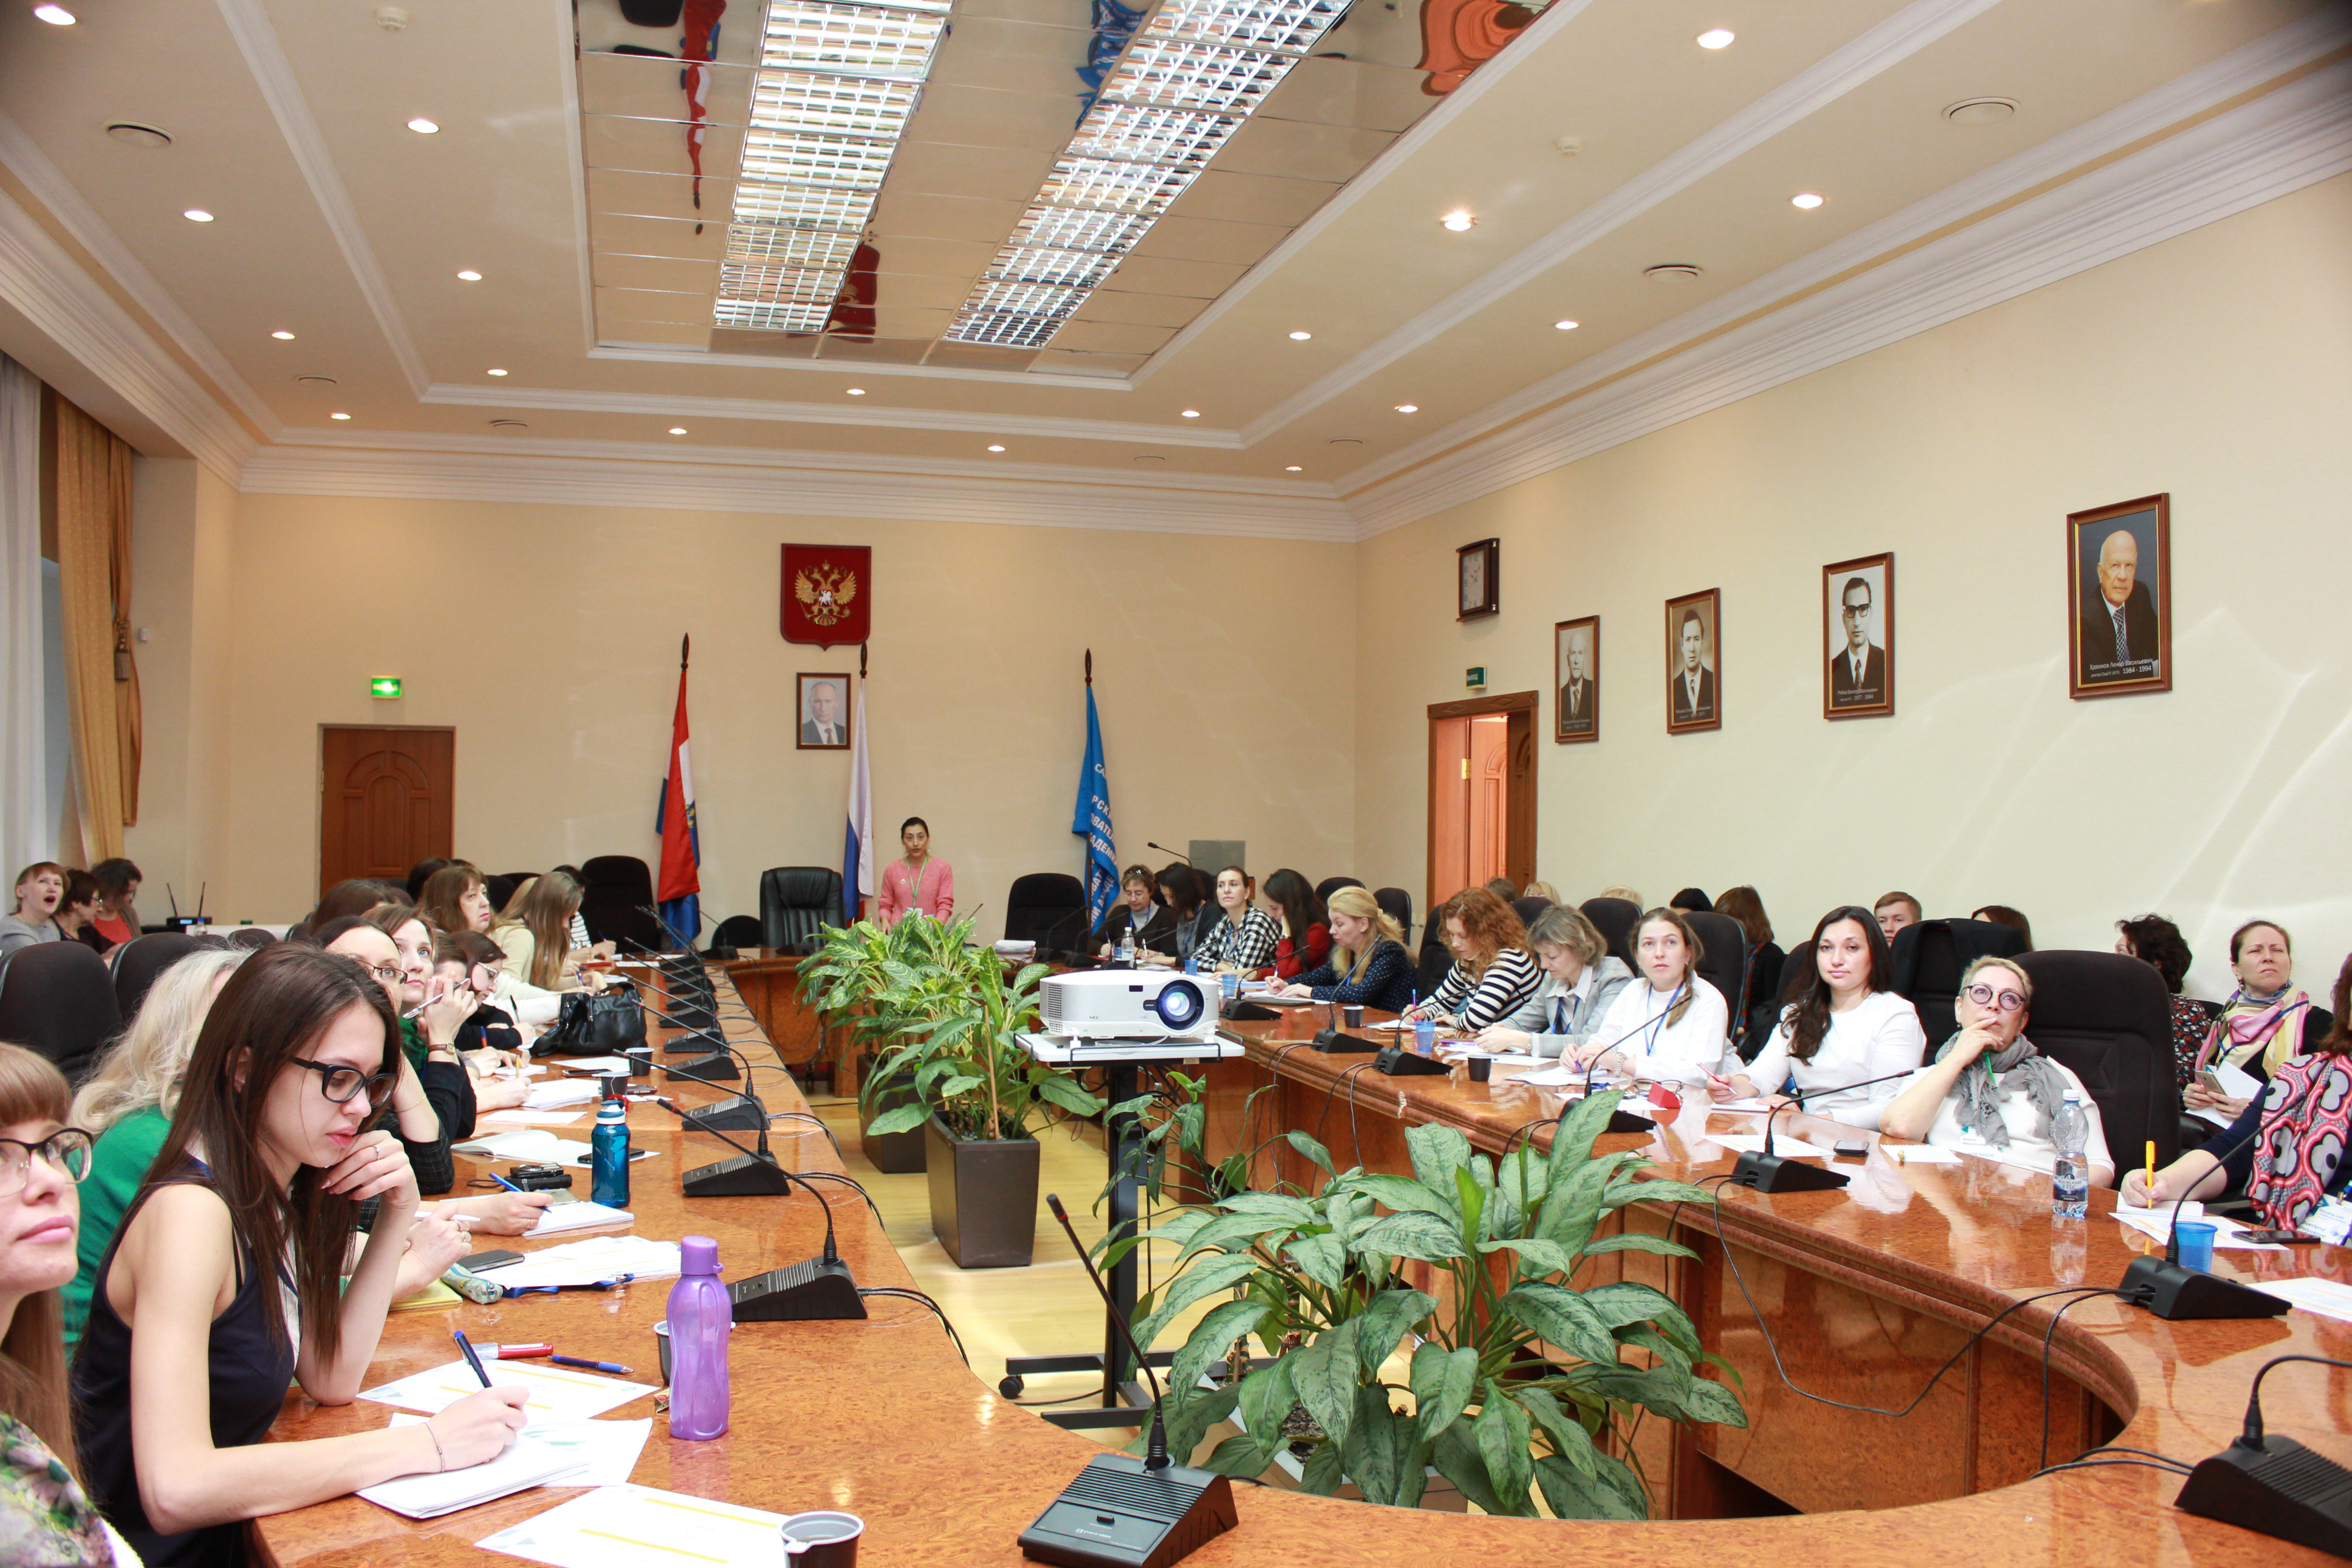 COEHD professor works with Russian scholars, students through U.S. Department of State program